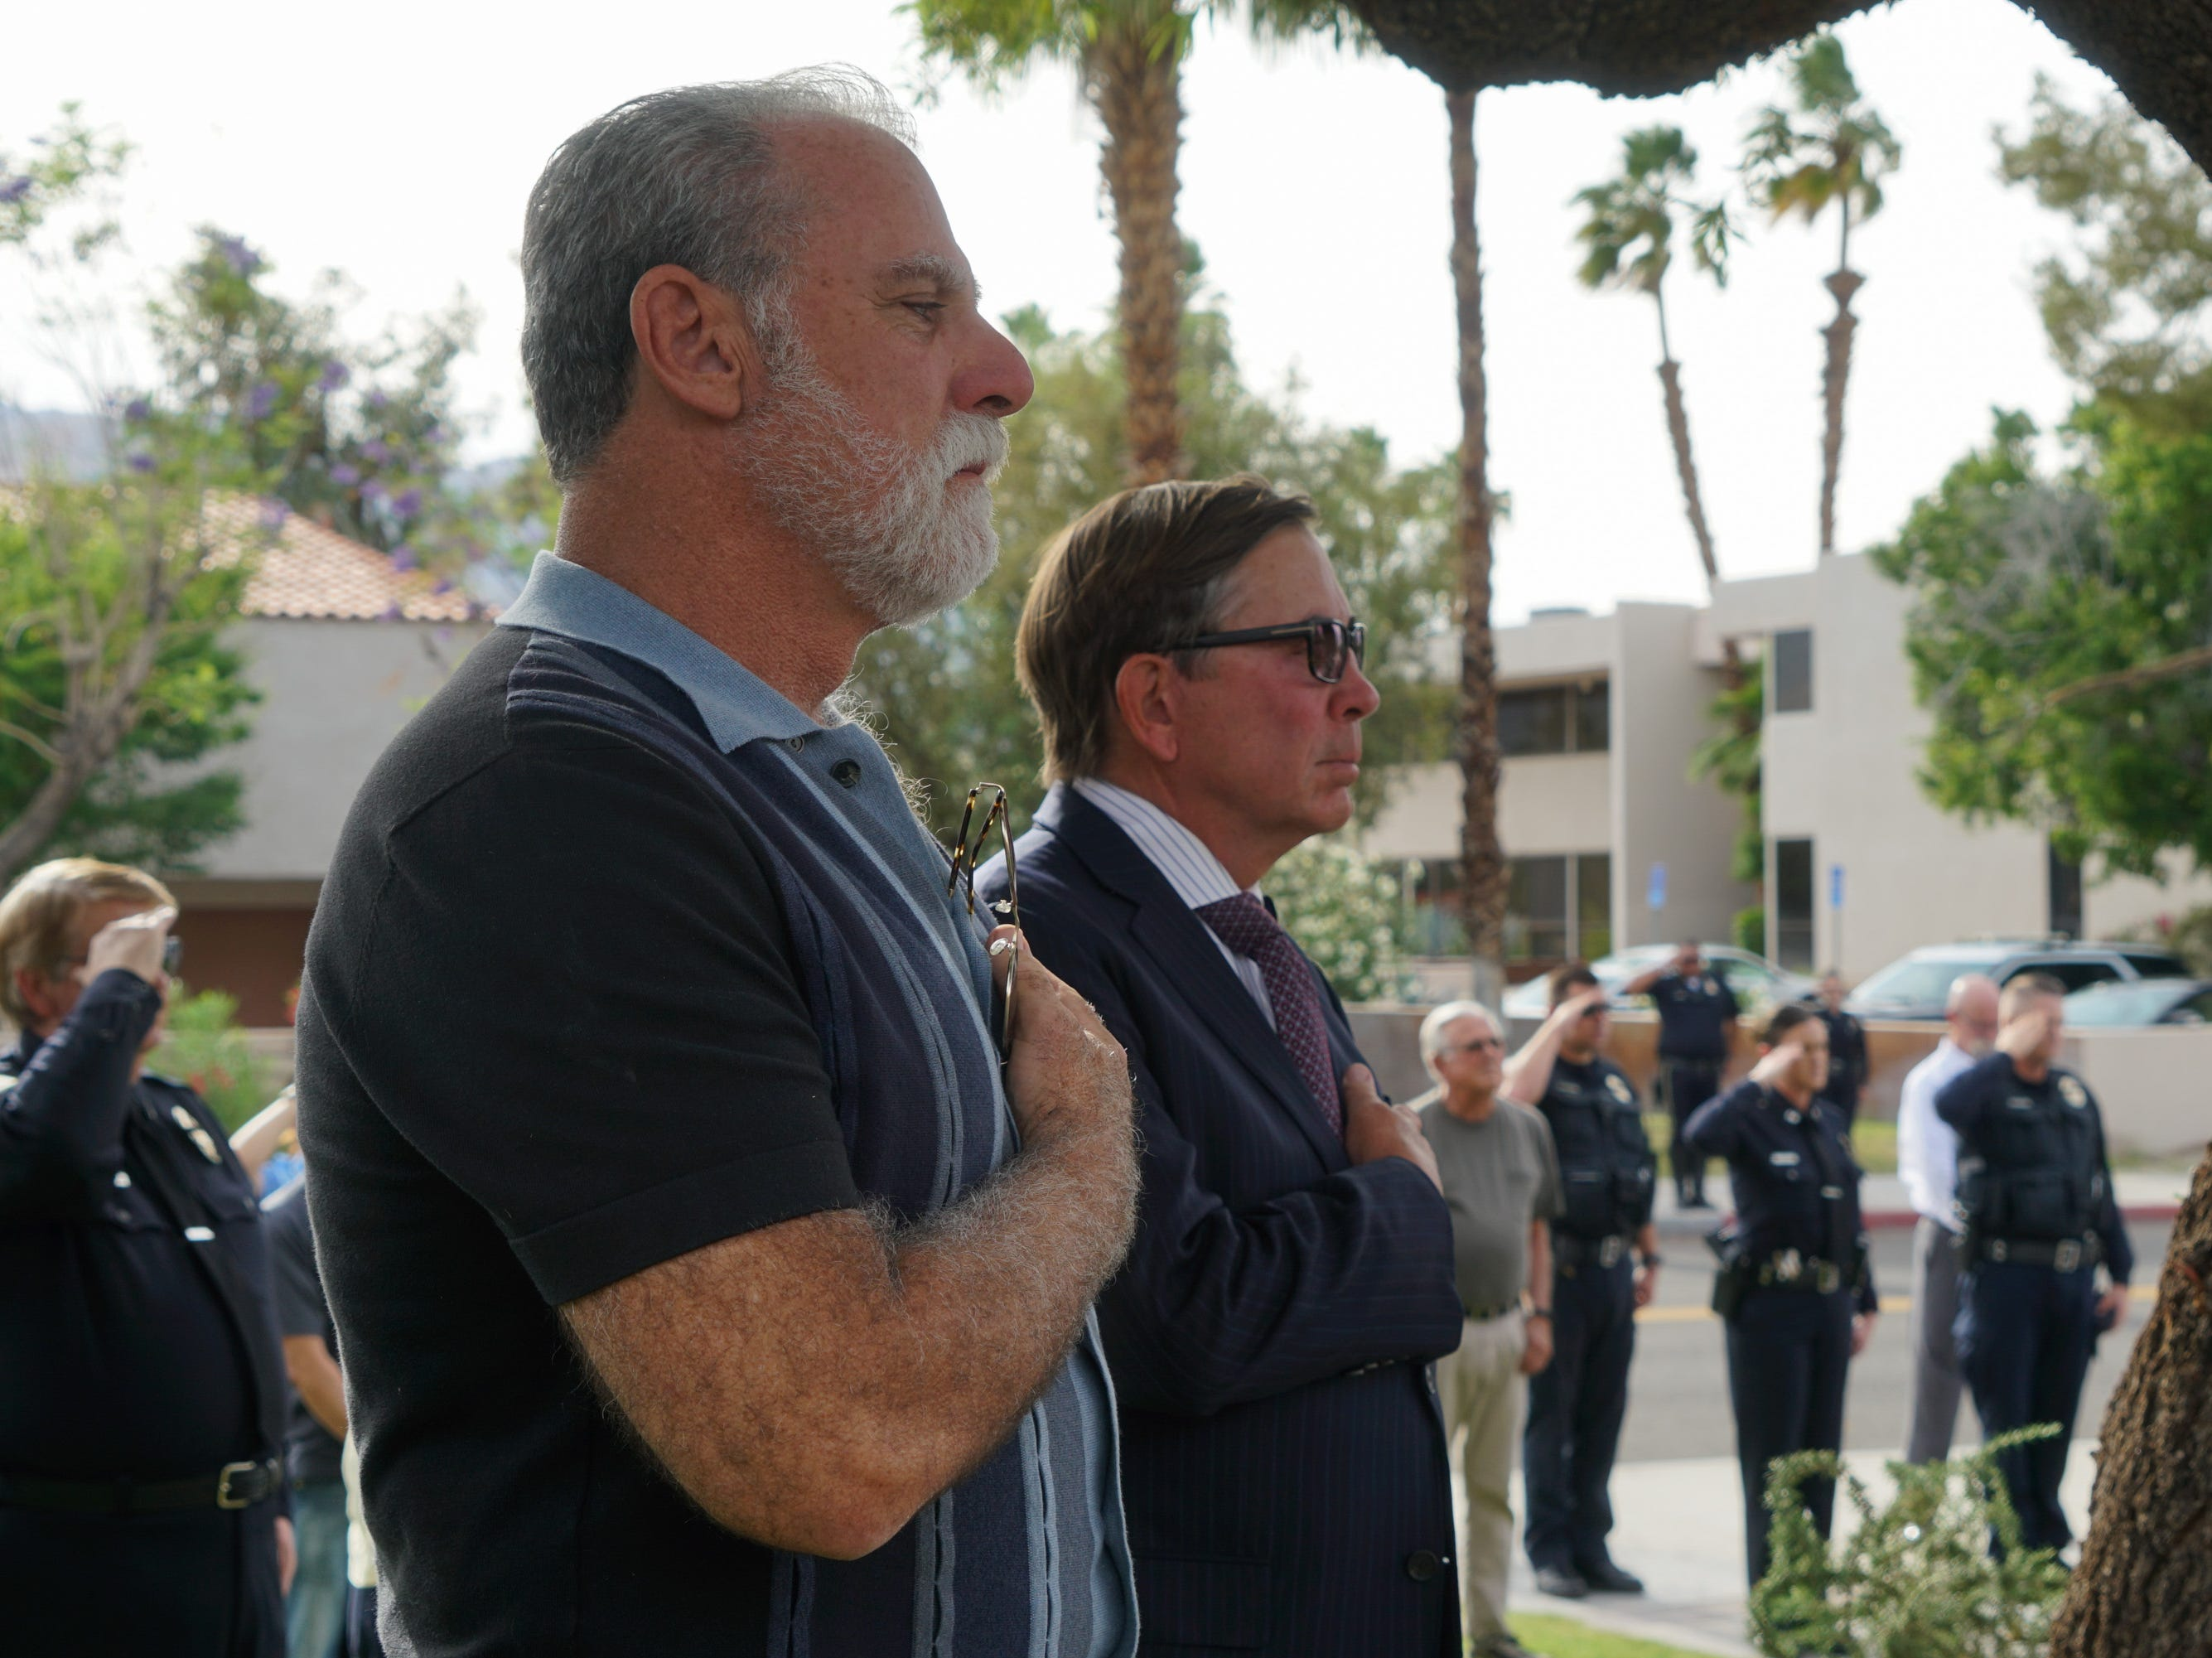 City Councilmember J.R. Roberts and Mayor Robert Moon attend a ceremony honoring fallen Palm Springs police officers on Peace Officers Memorial Day, Palm Springs, Calif., May 15, 2019.